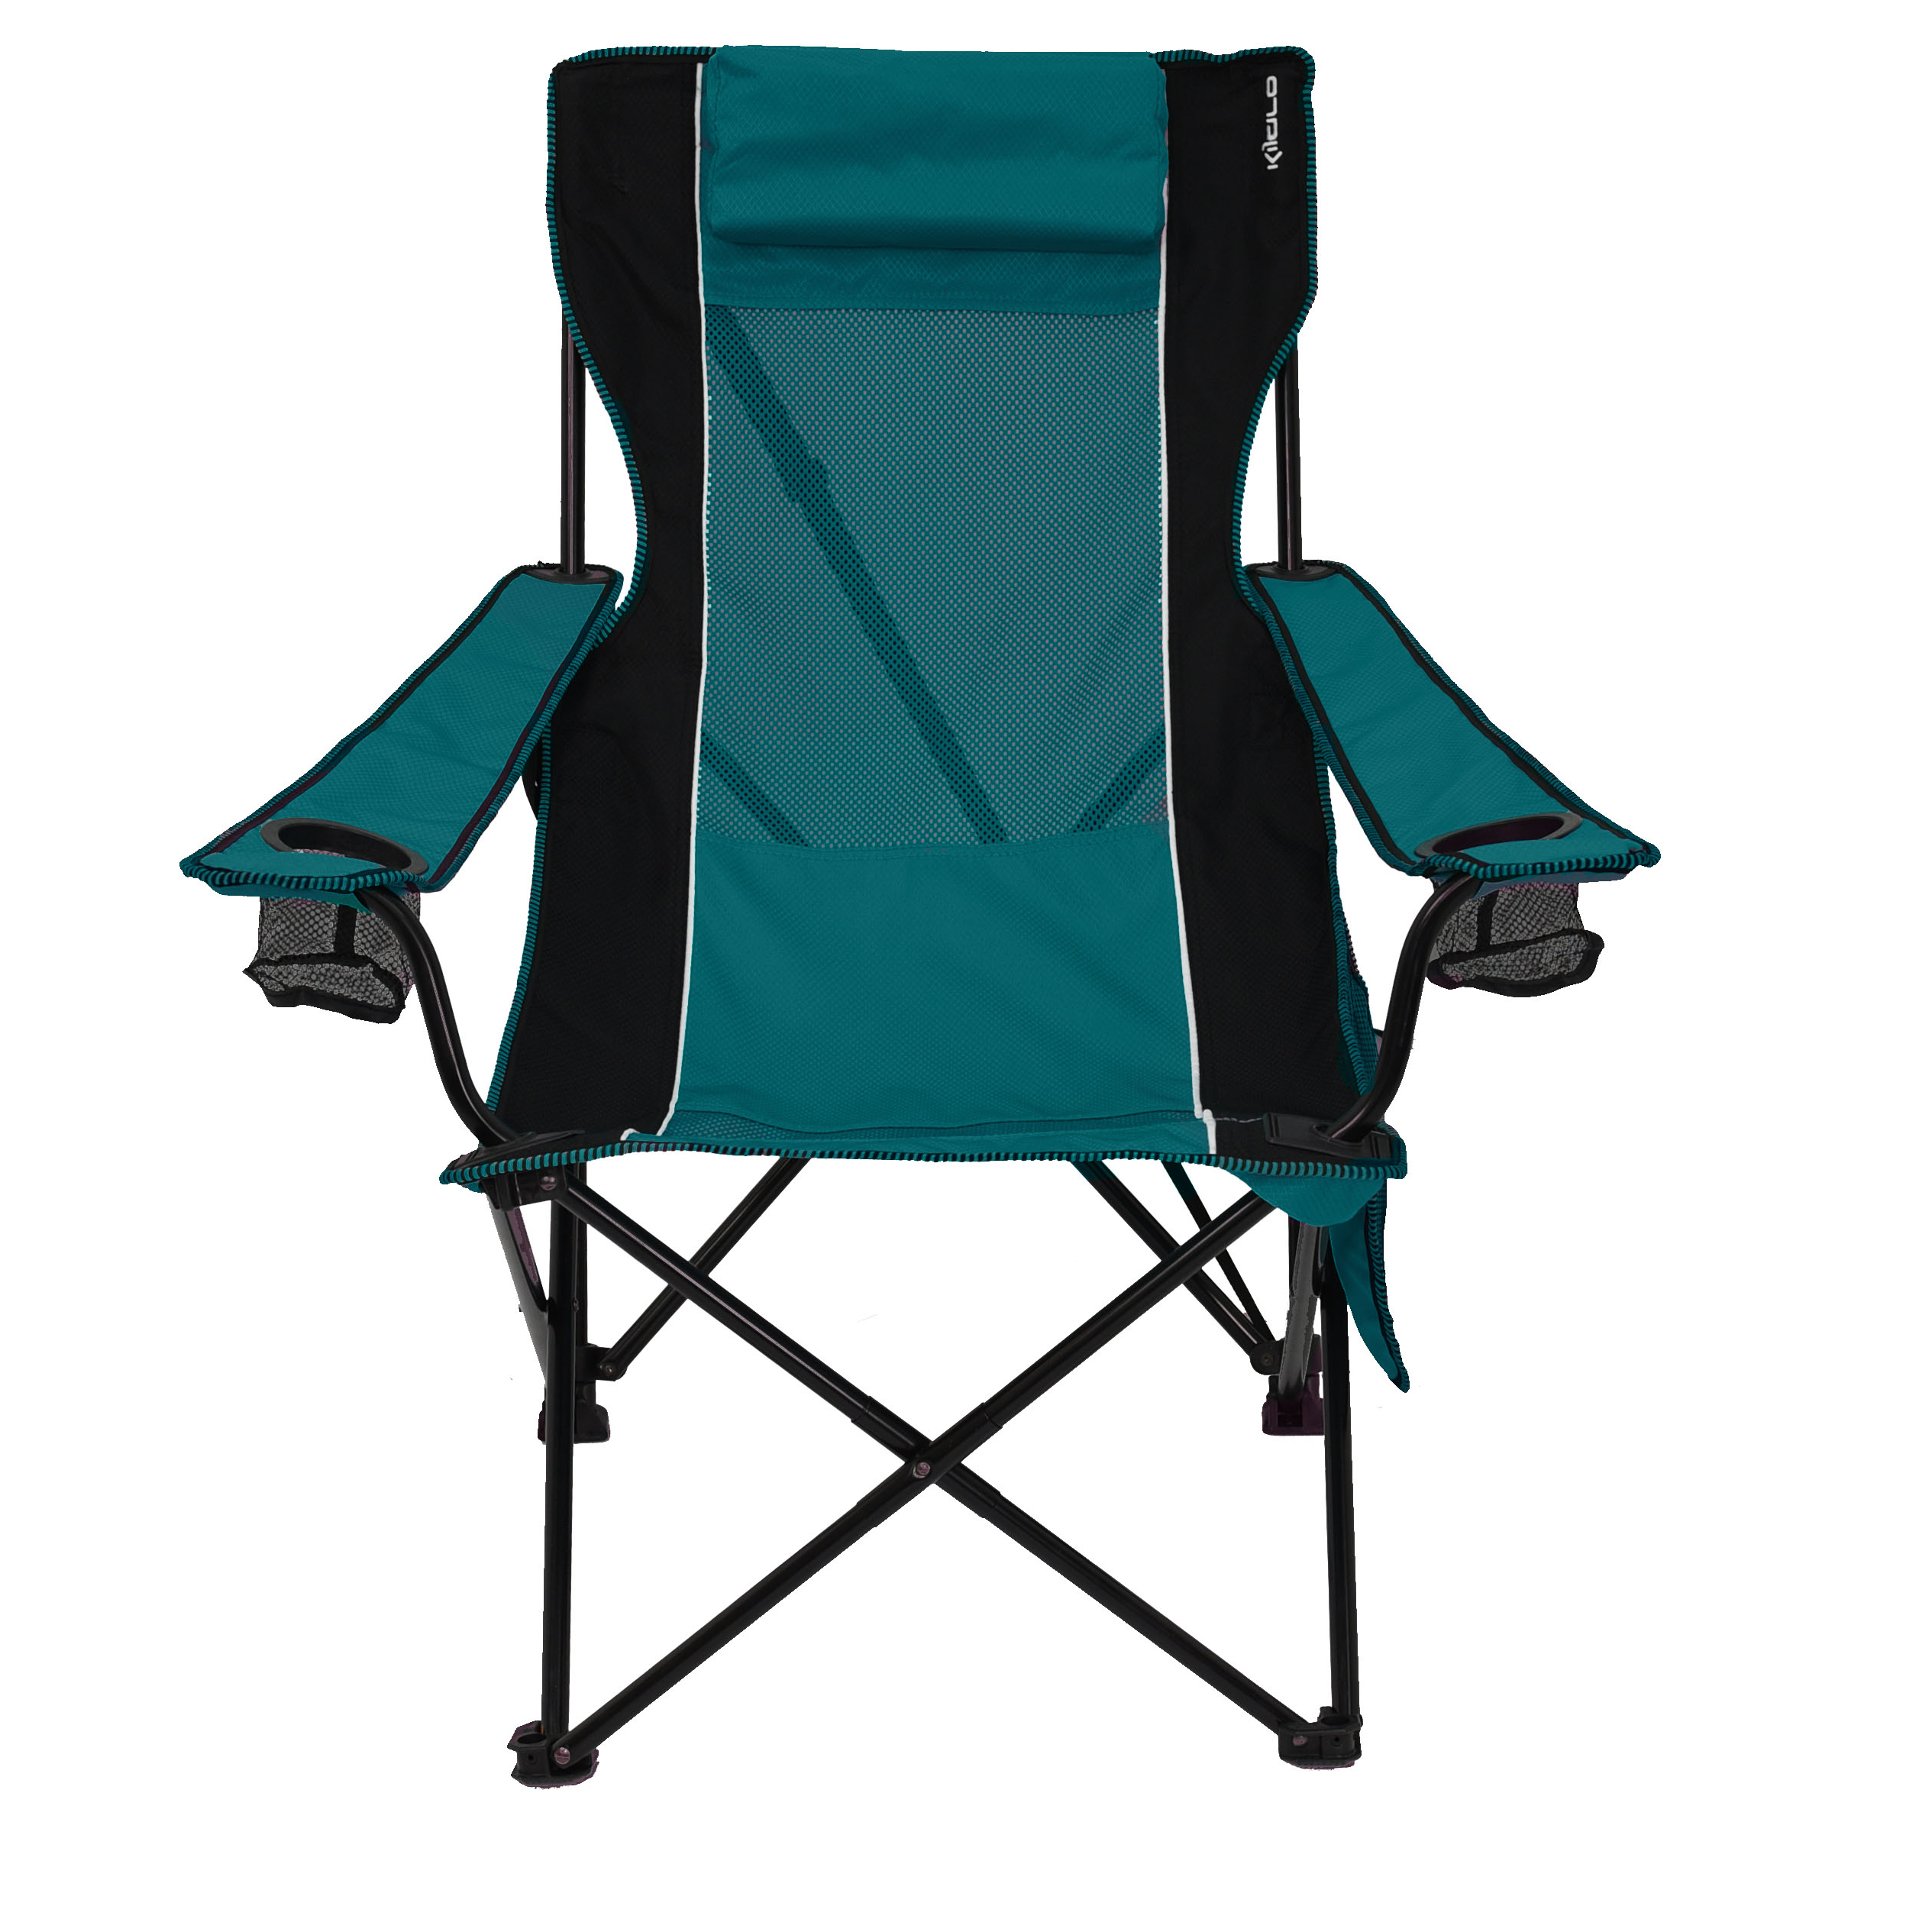 Sunset Patio Sling Folding Chairs With Headrest Regarding Fashionable Sling Chair (View 12 of 25)